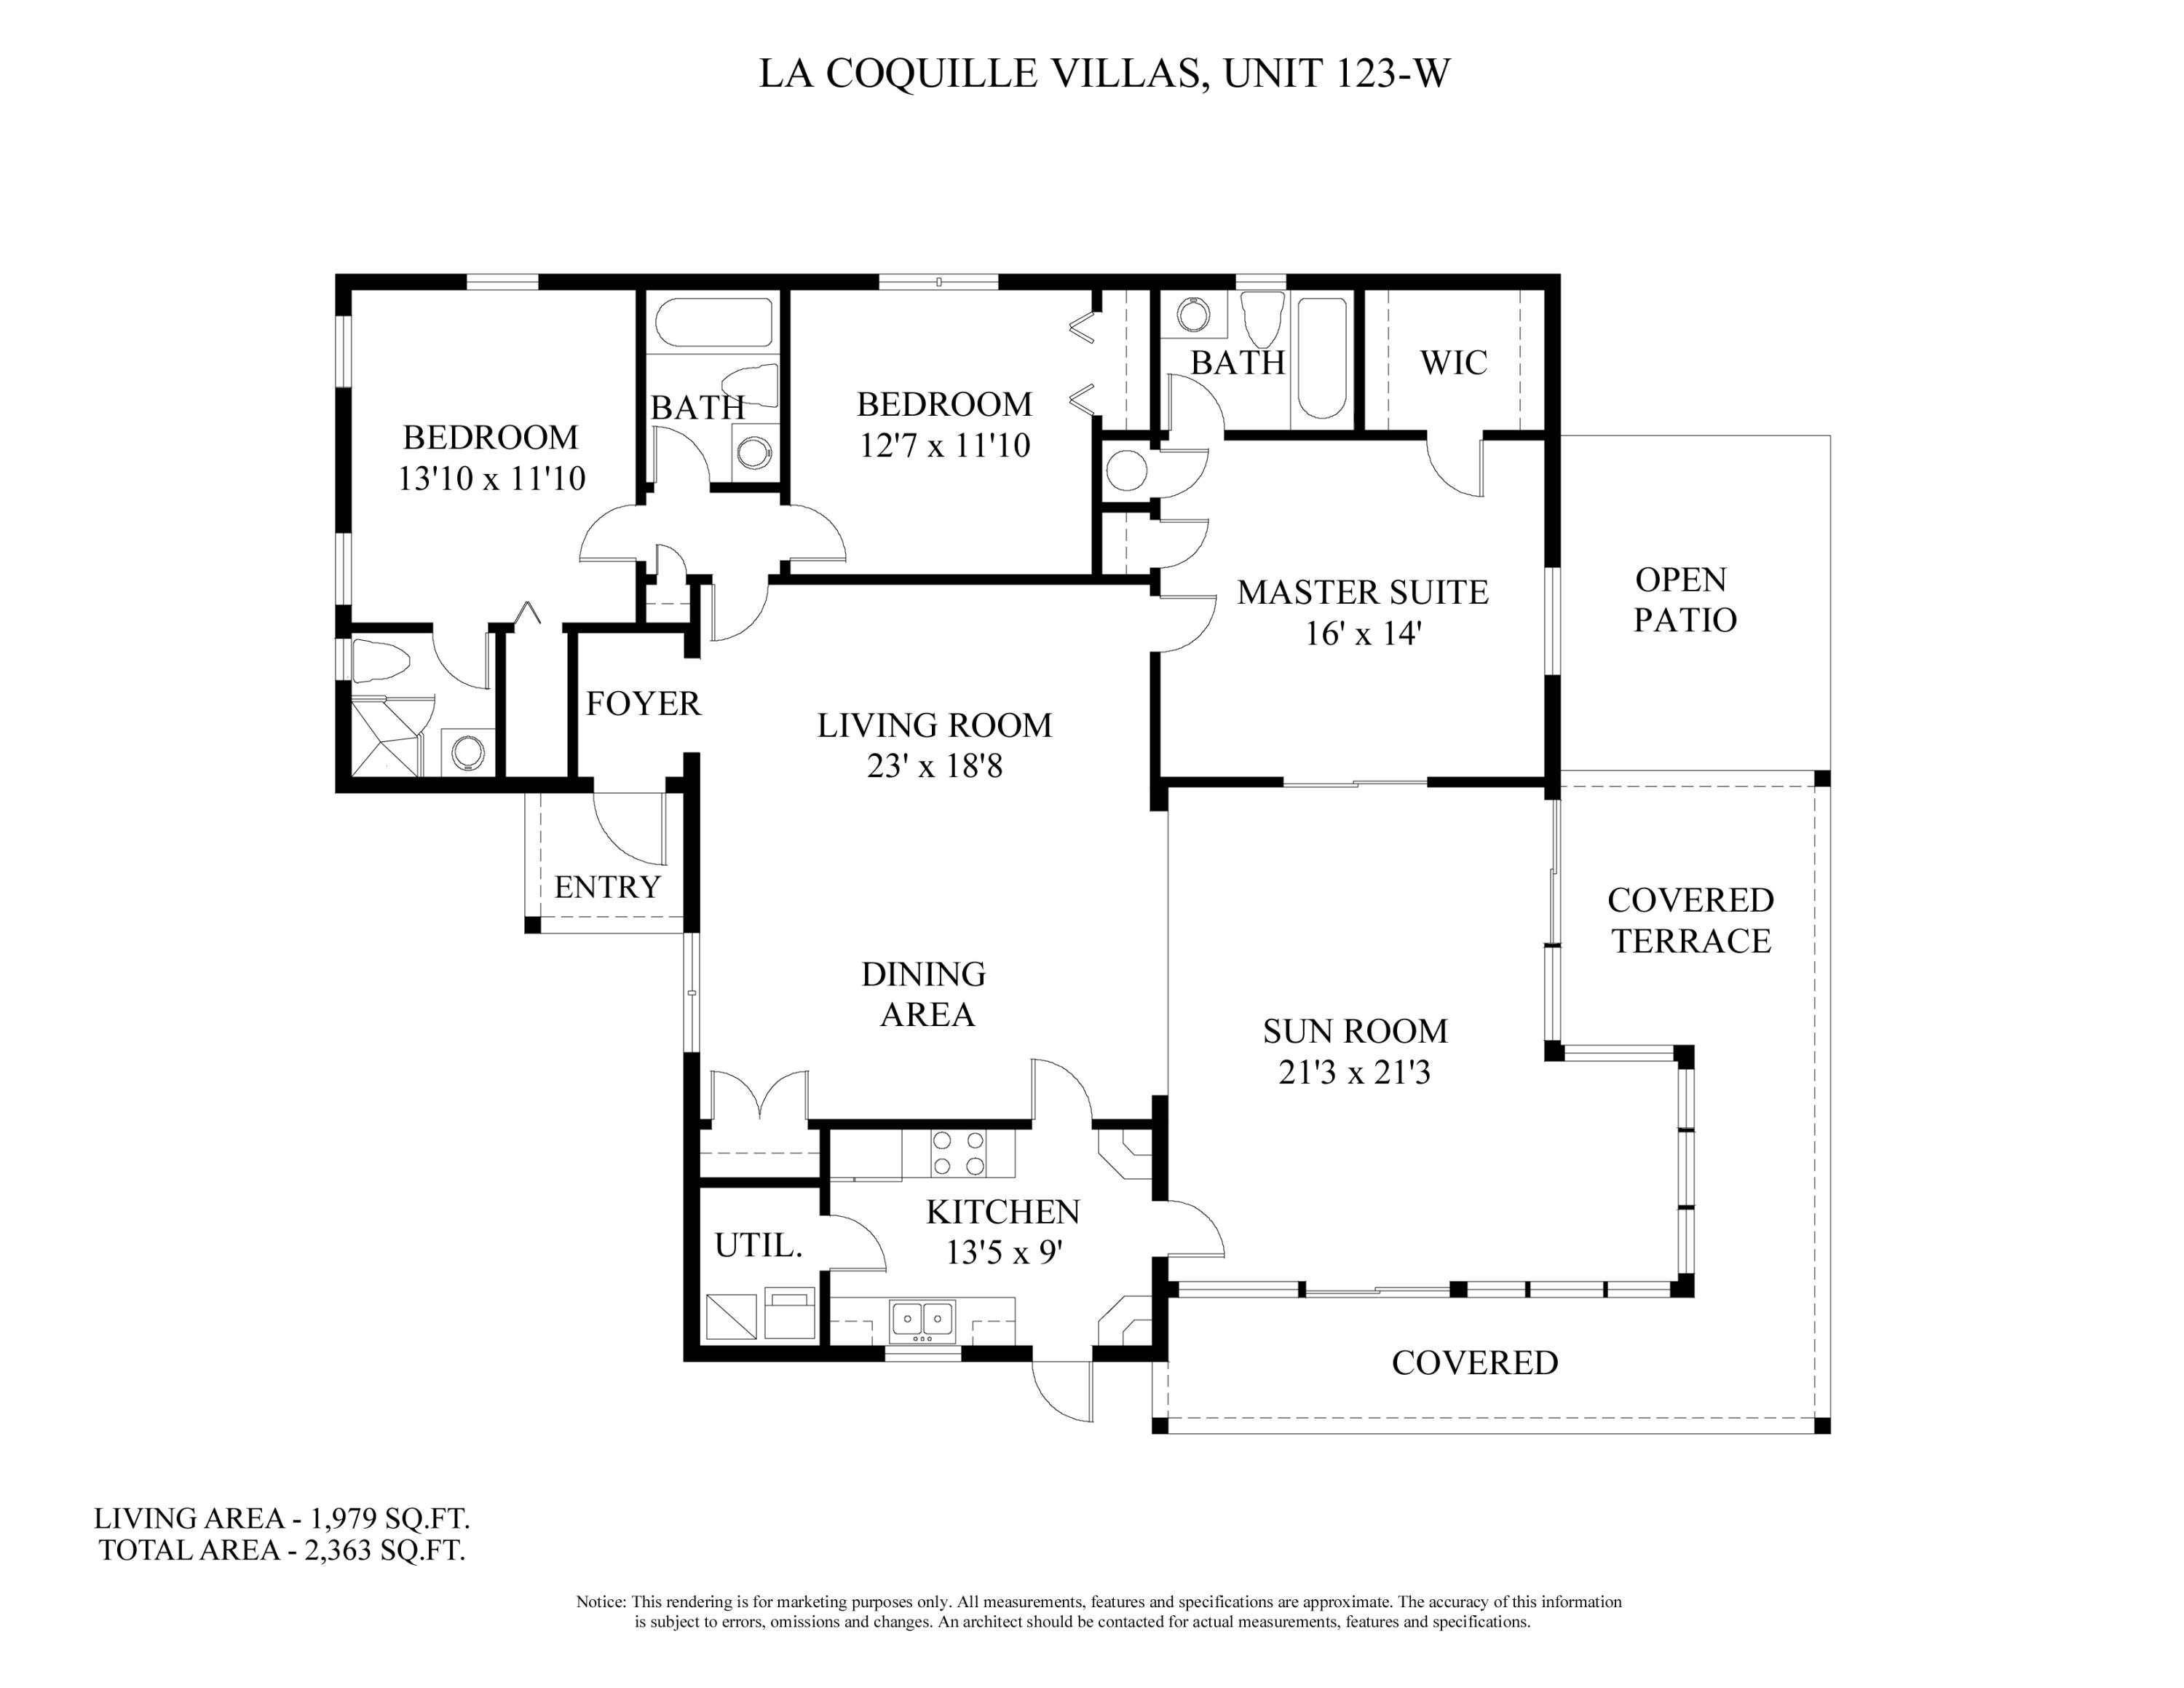 LA COQUILLE HOMES